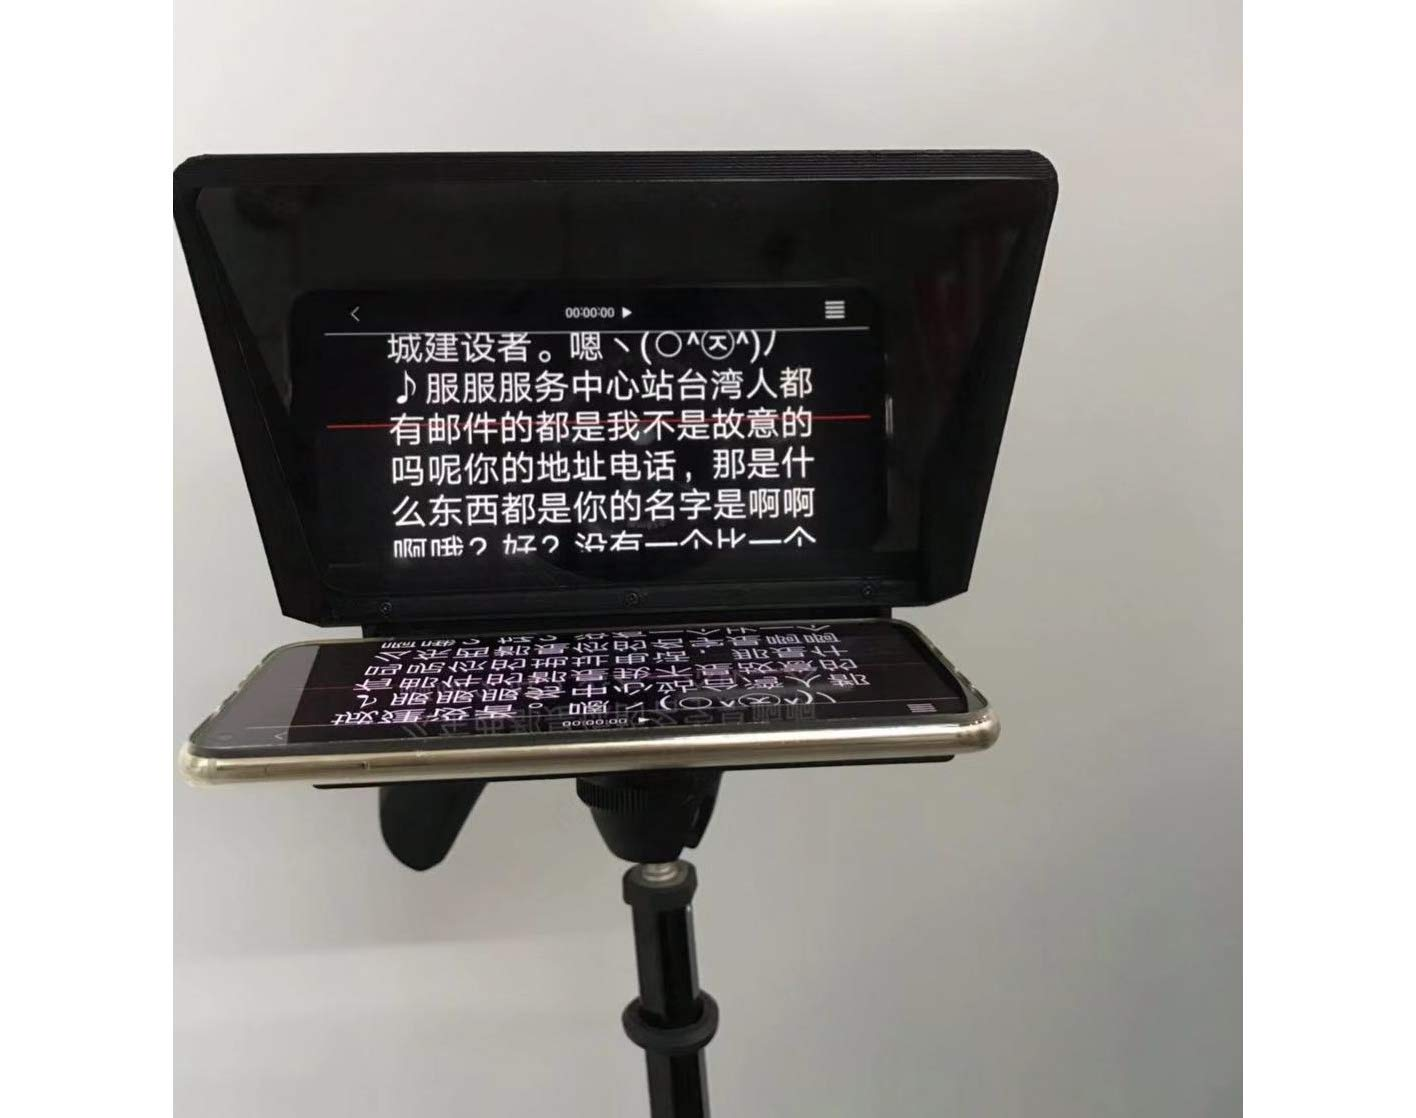 S18 - Teleprompter Portable Teleprompter for Smartphone with Remote Control Shooting by DV Camera by S18